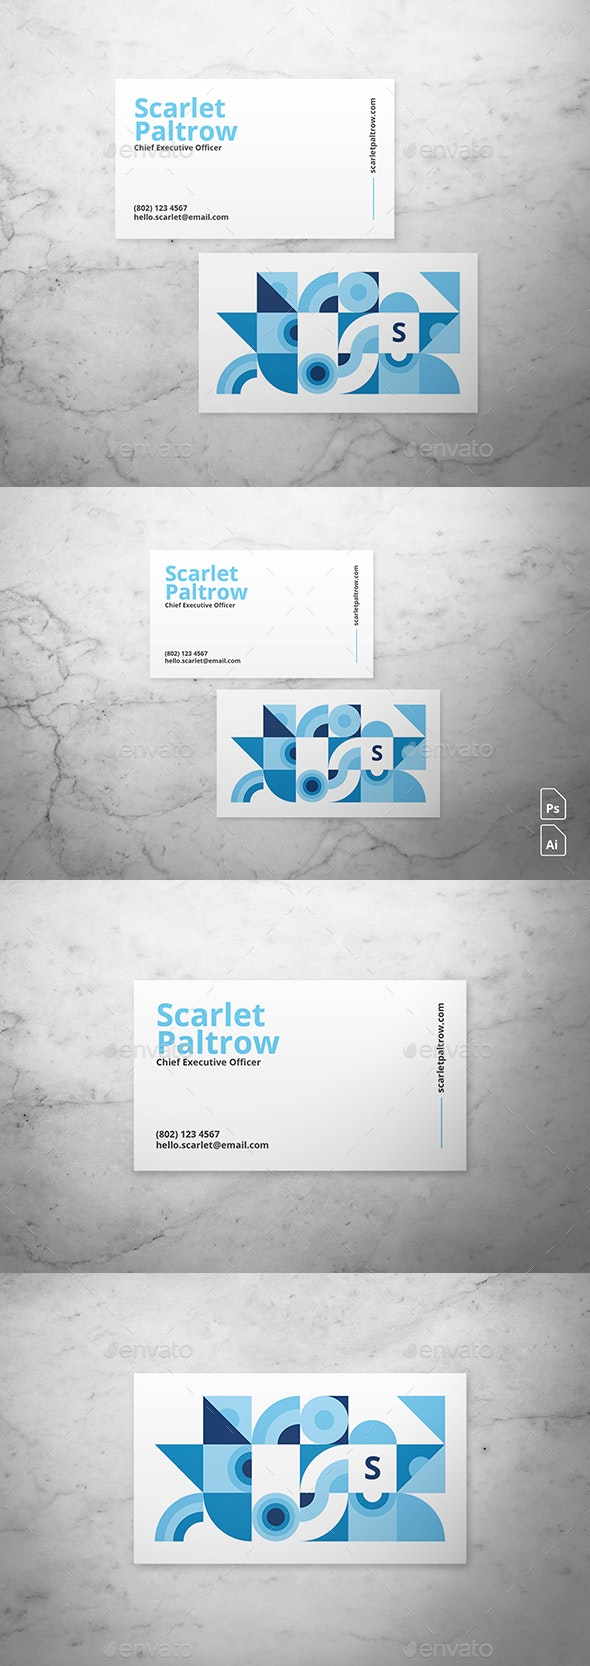 Playful Business Card - Corporate Business Cards